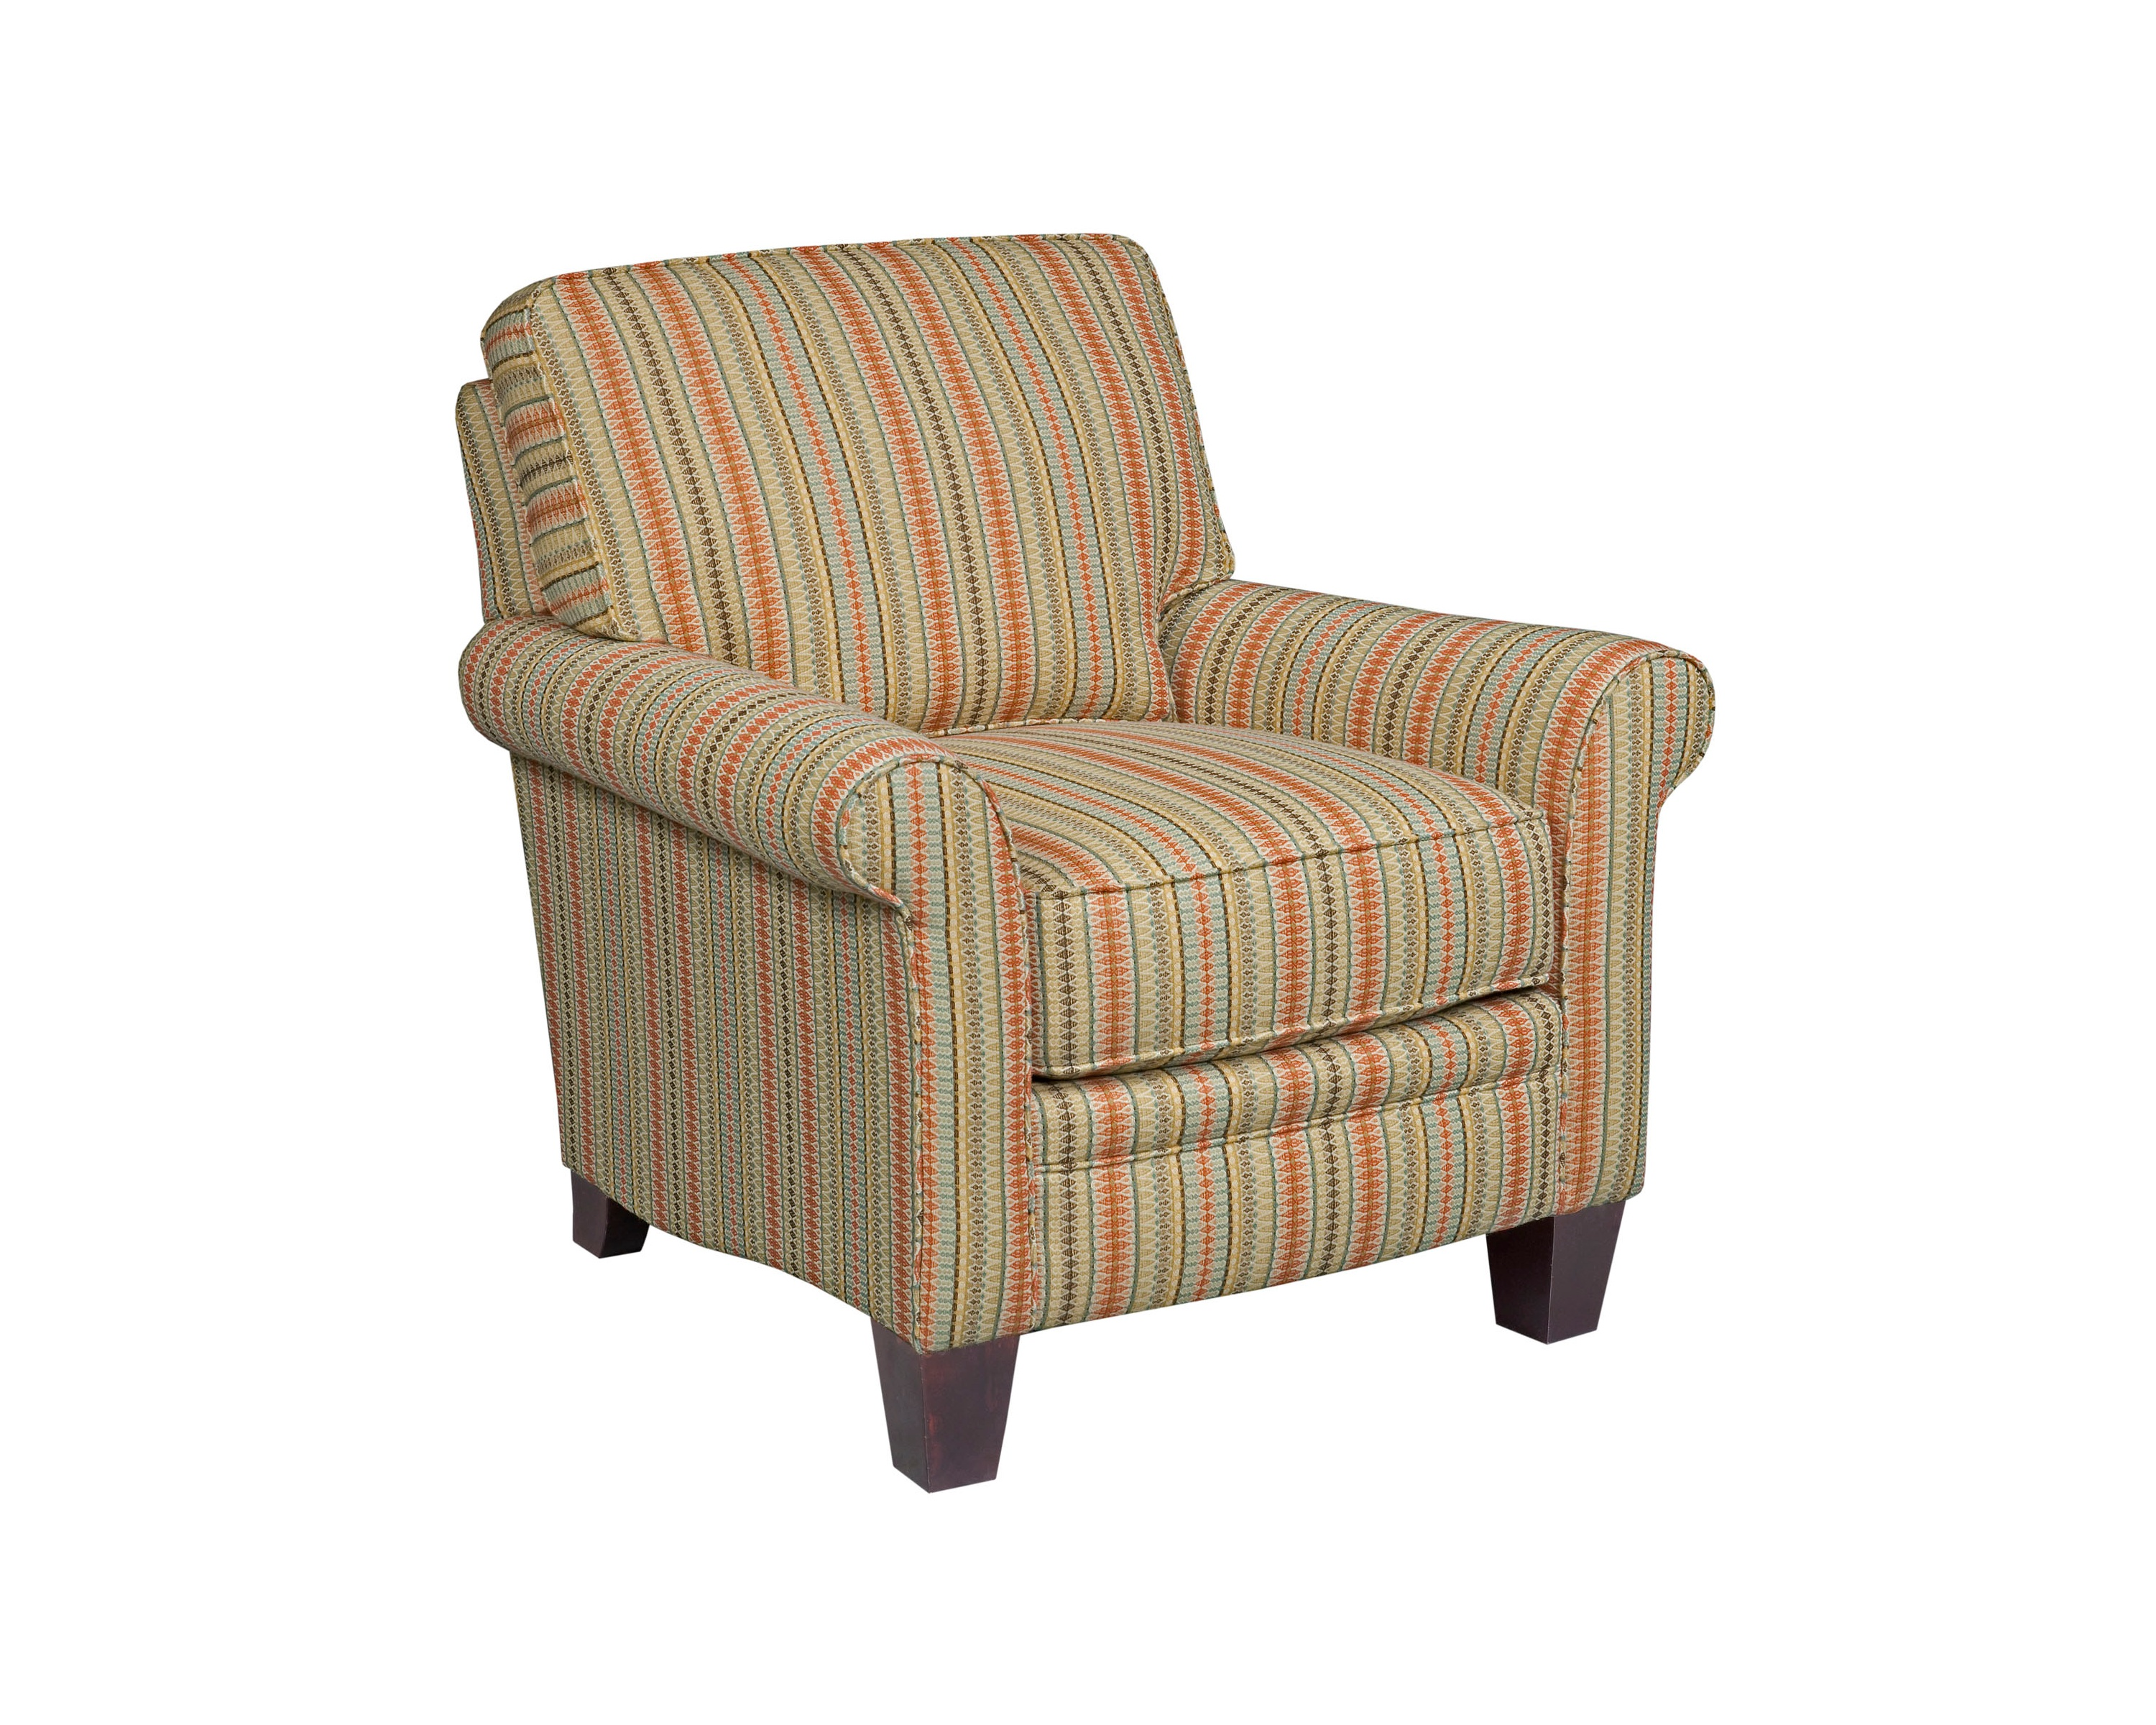 Gina 6966 Chair and Ottoman